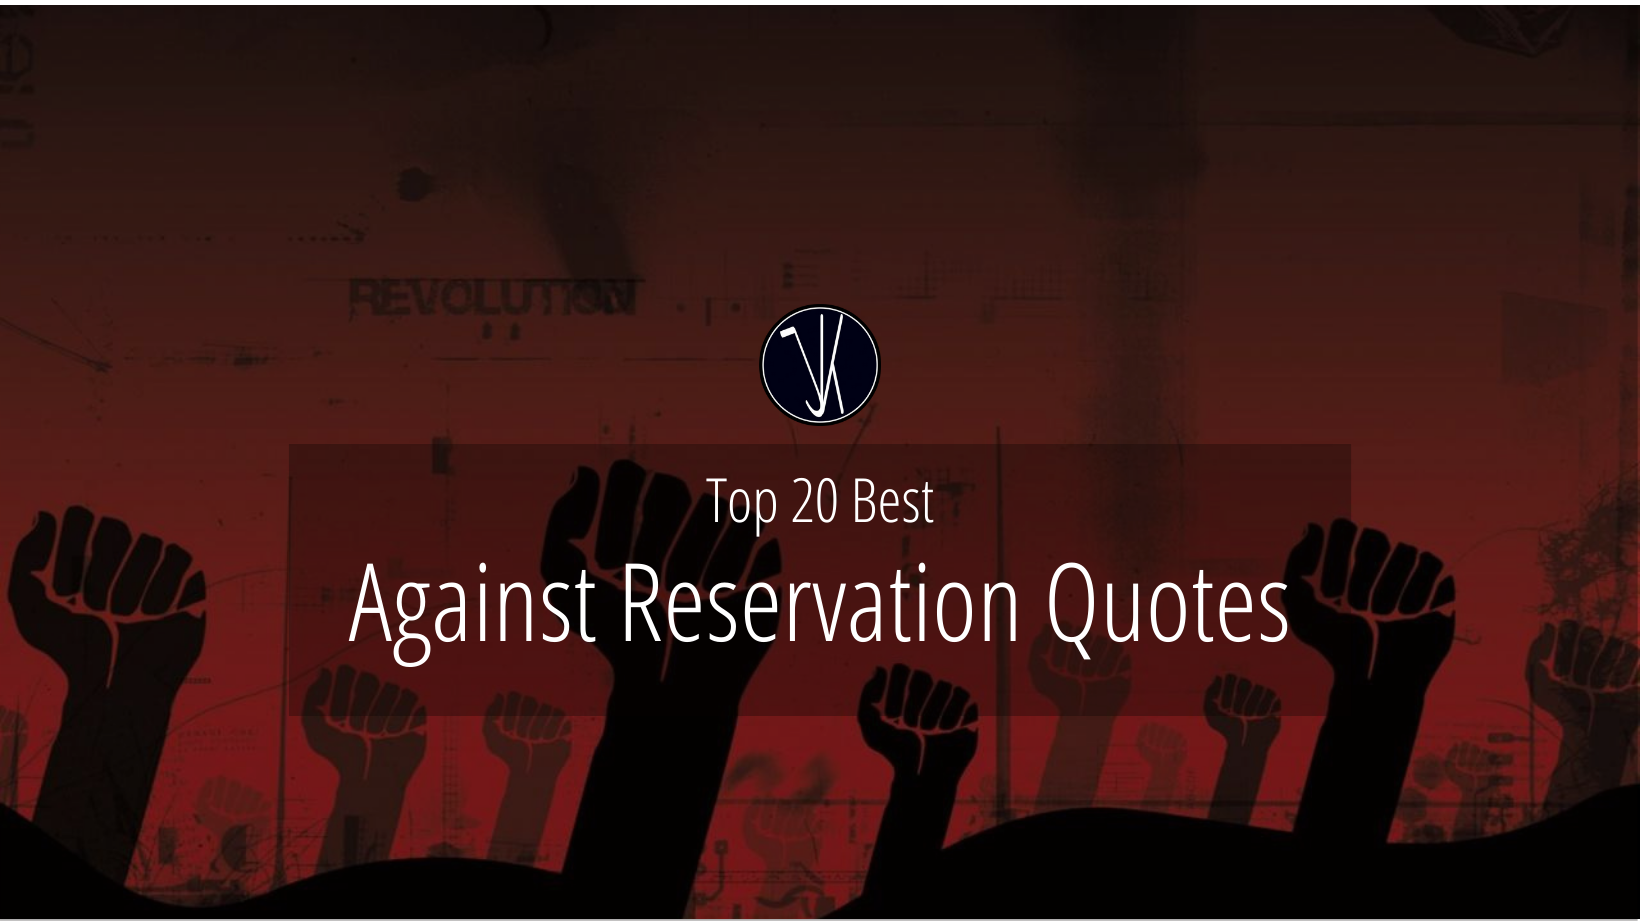 Against Reservation Quotes